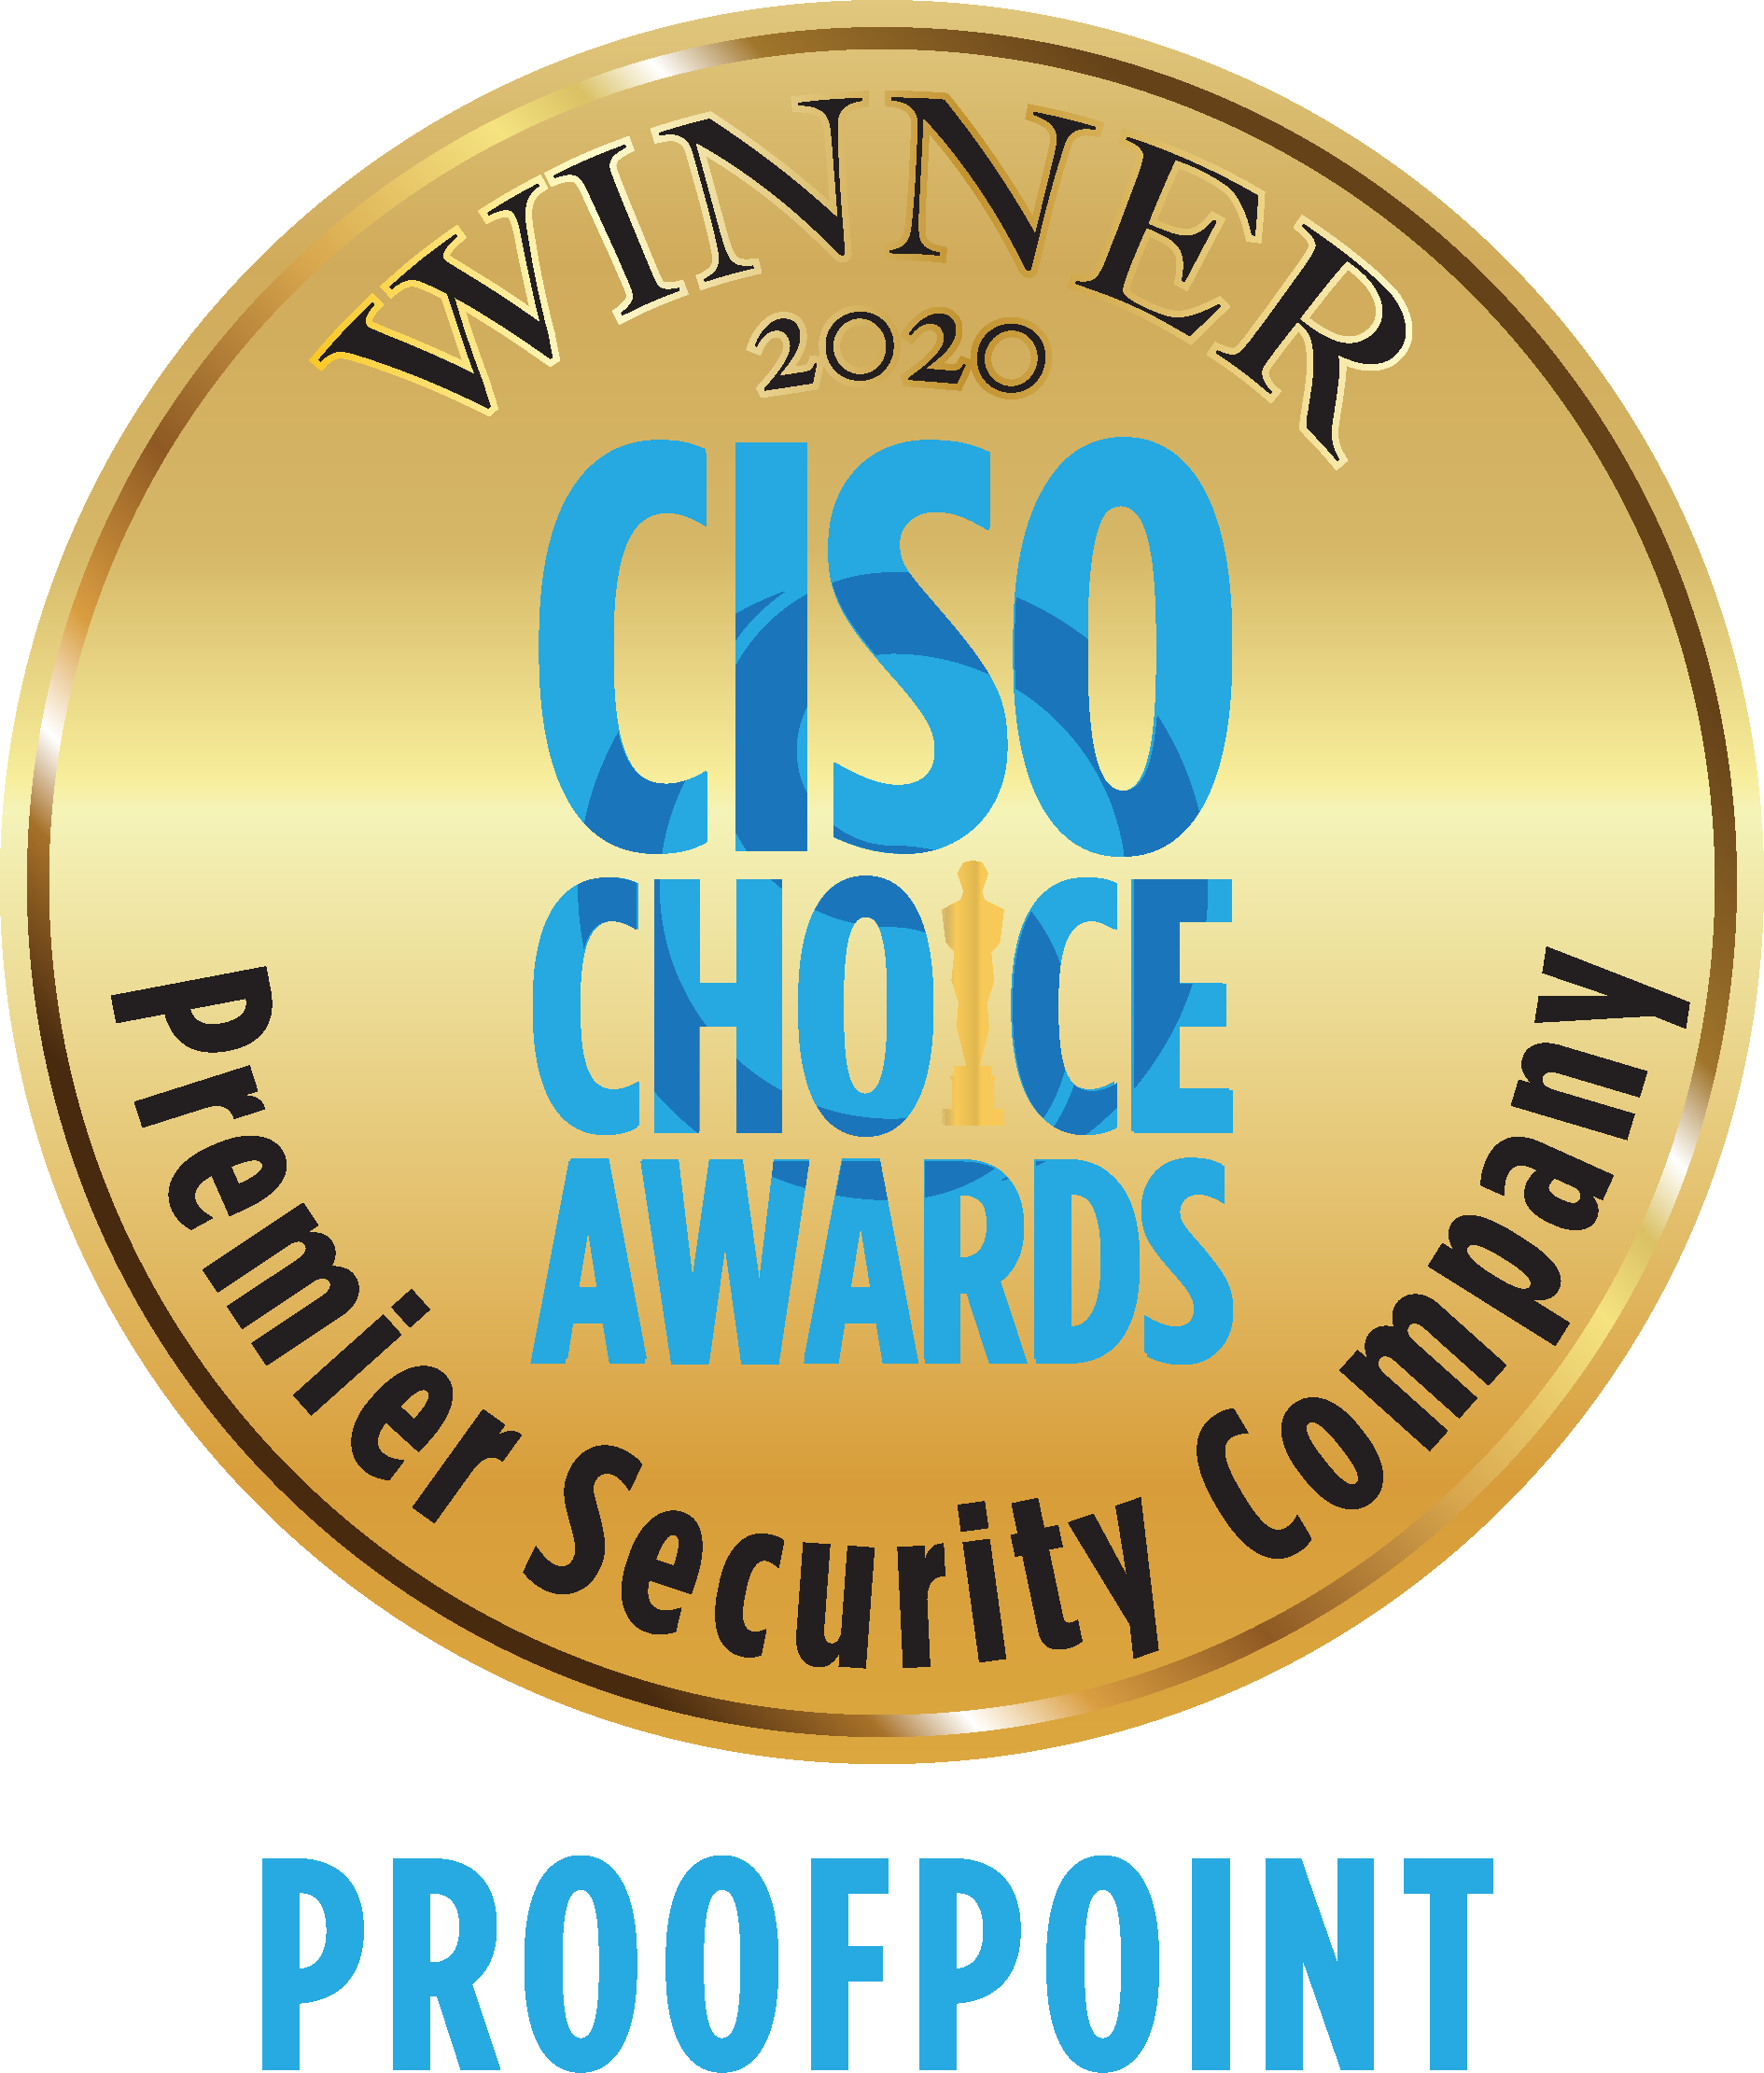 CISO Choice Awards_Premier Security Logo